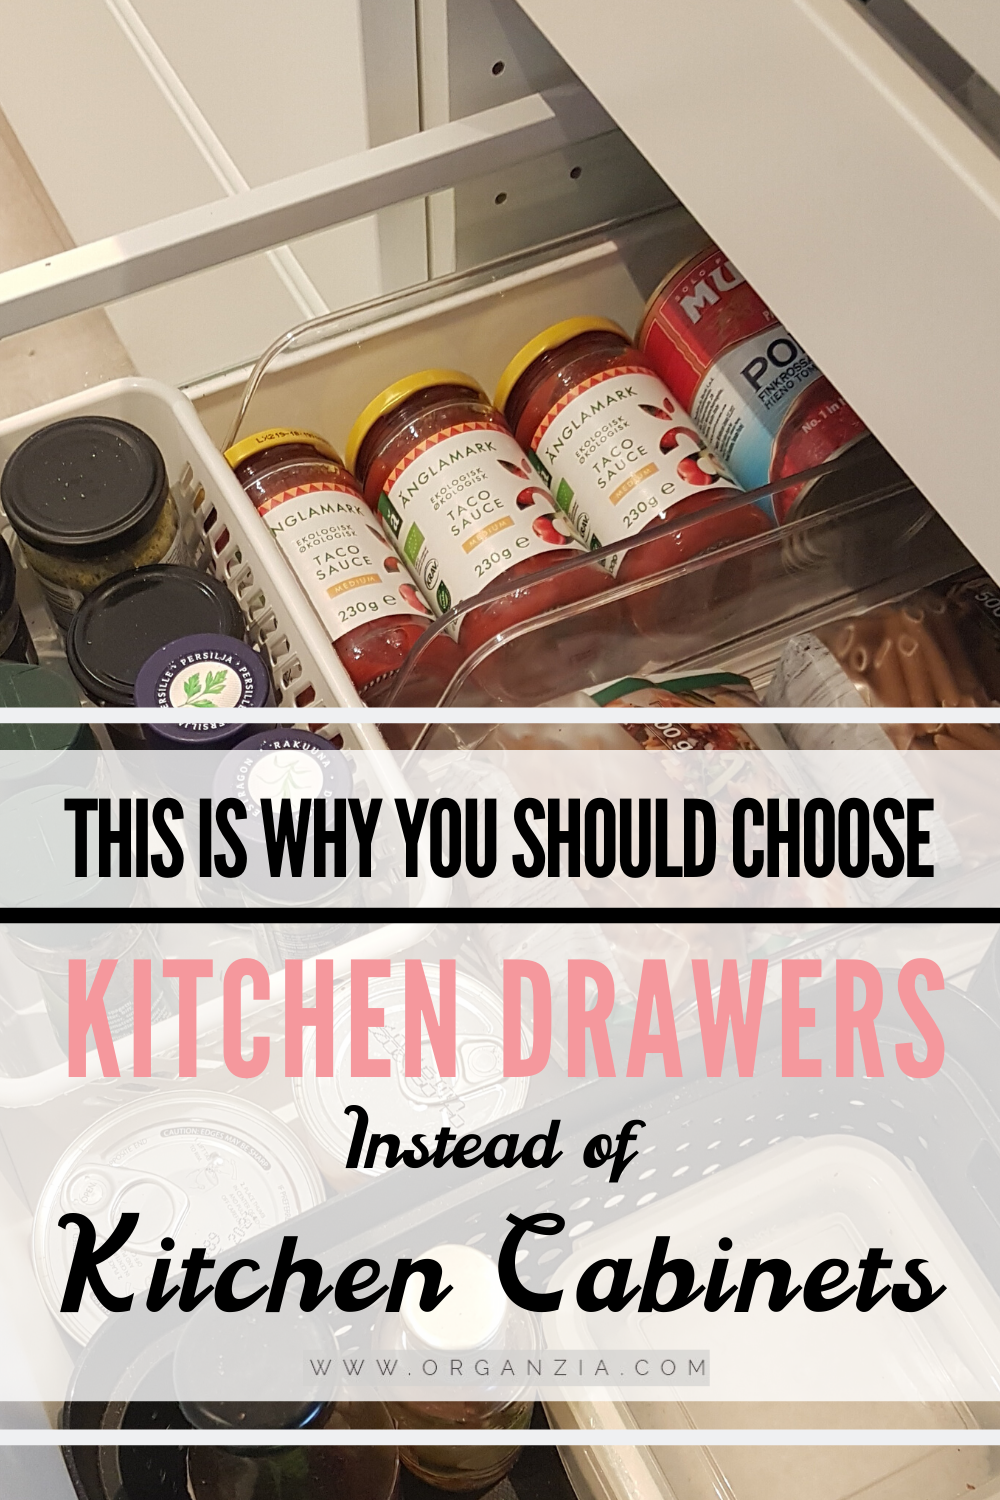 How To Organize Kitchen Drawers Instead Of Cabinets Organzia In 2020 Kitchen Drawer Organization Kitchen Drawers Clean Kitchen Cabinets